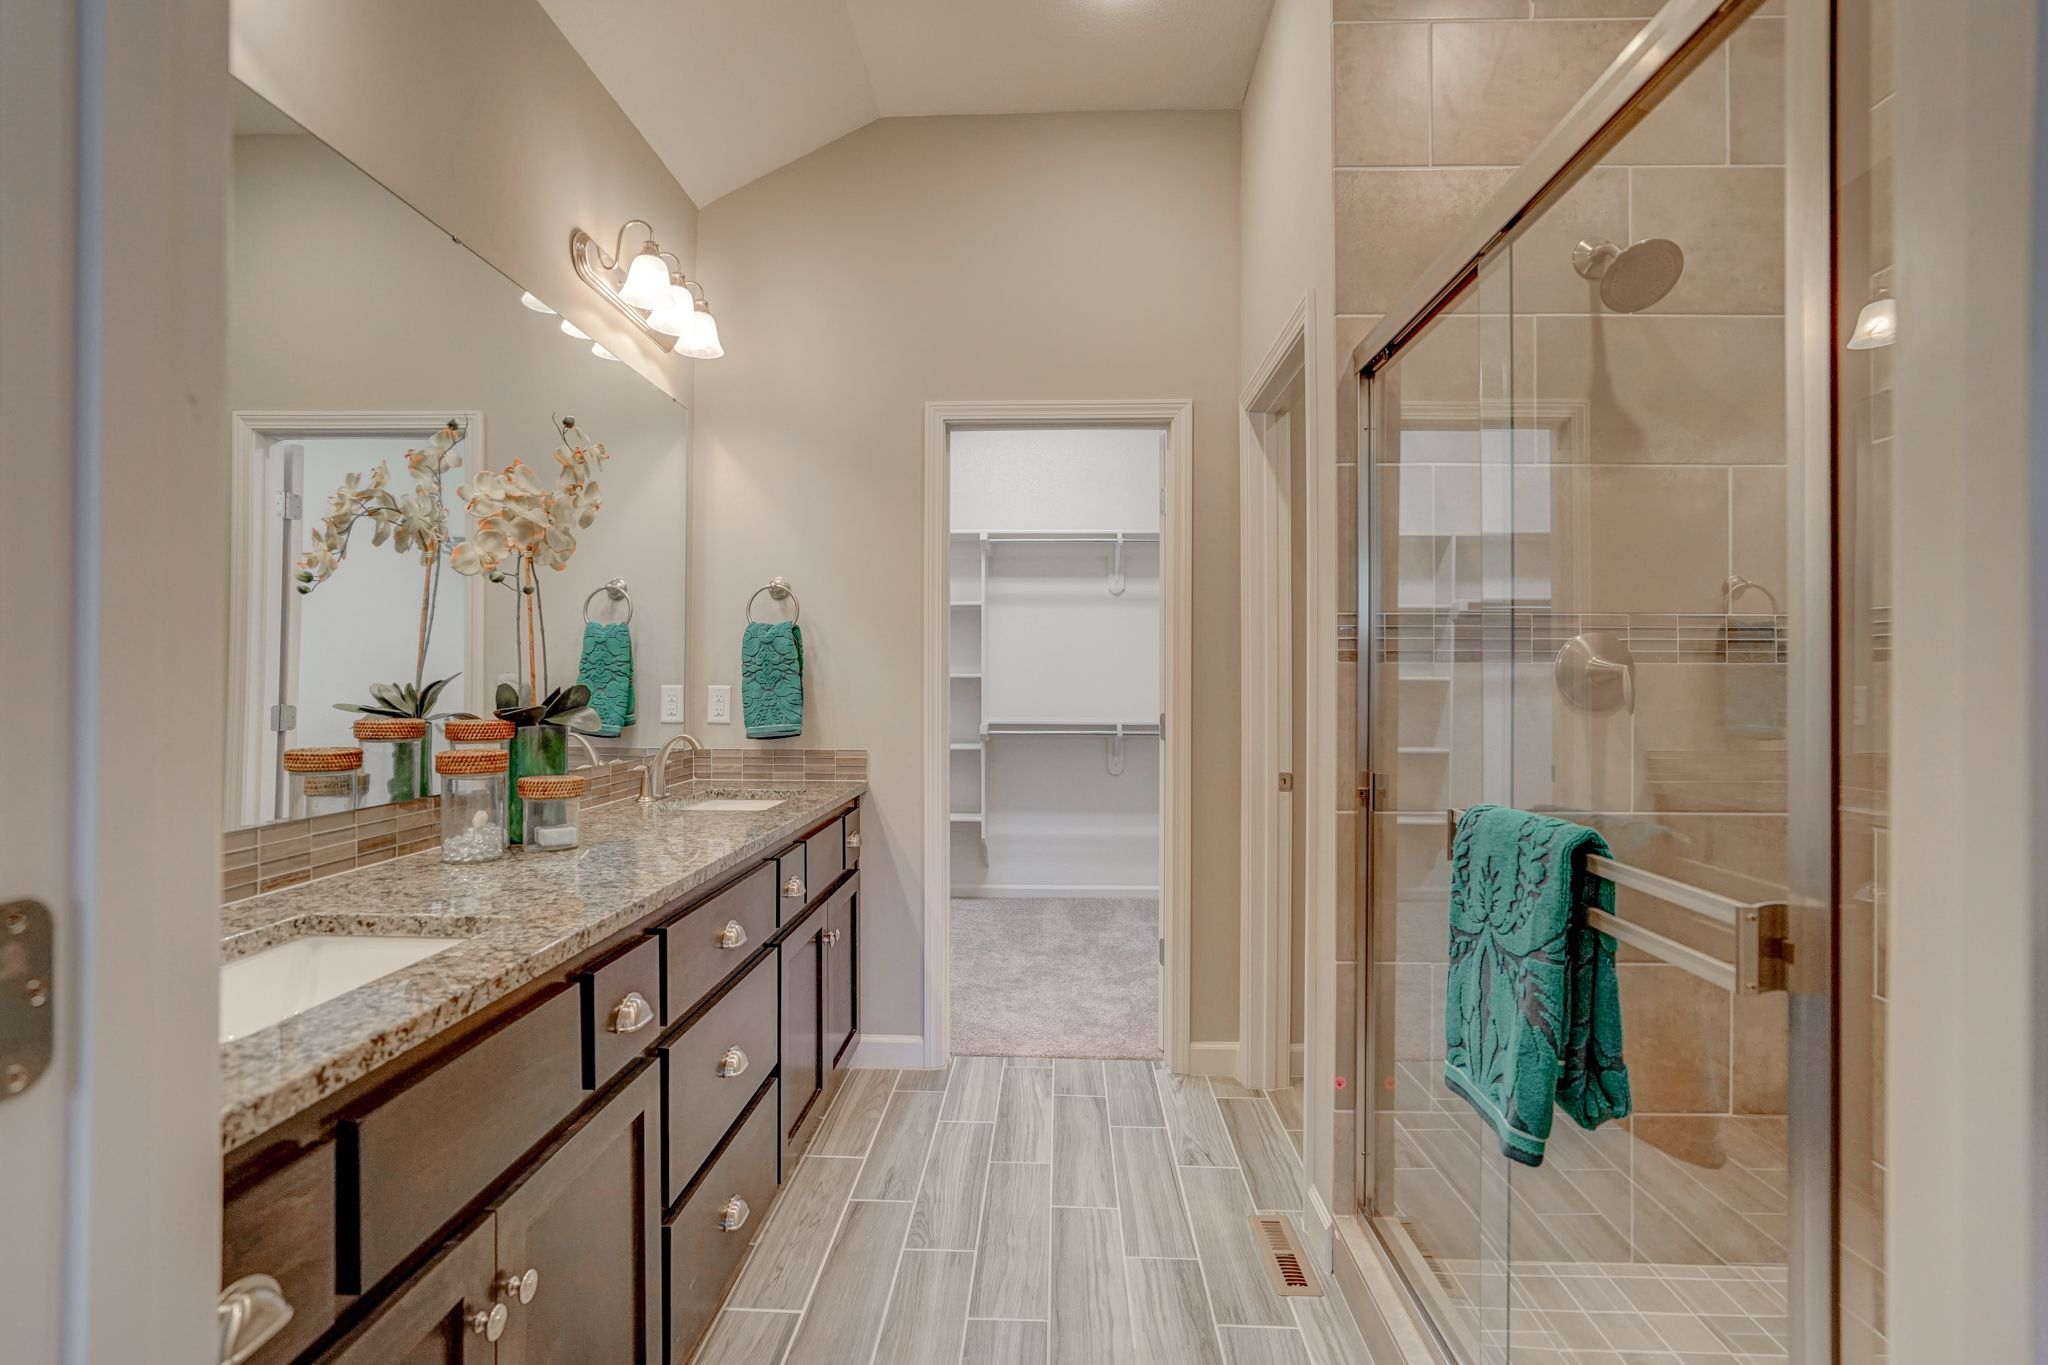 Bathroom featured in the Cypress - IA By Summit Homes in Des Moines, IA